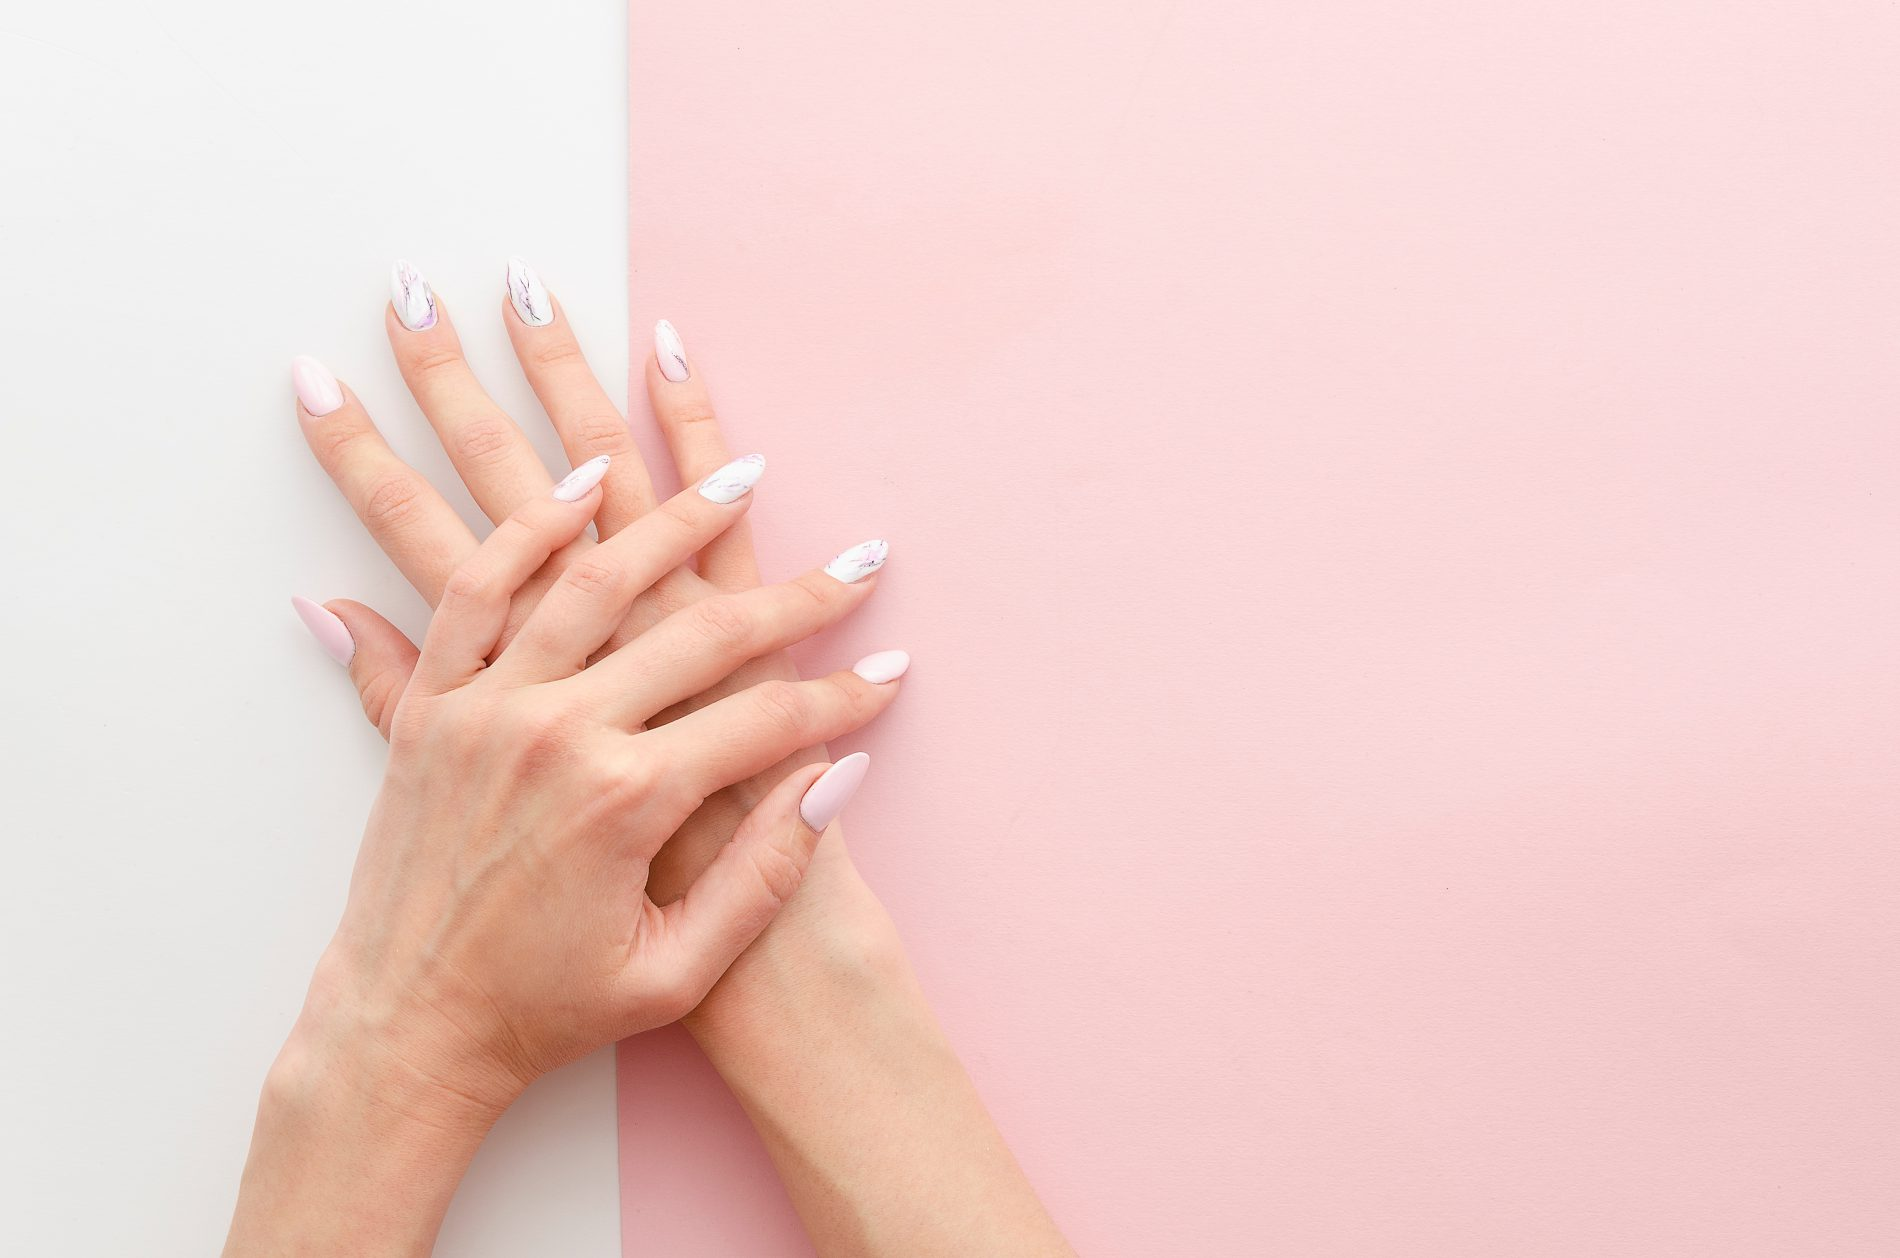 woman's hands with french manicure acrylic nails